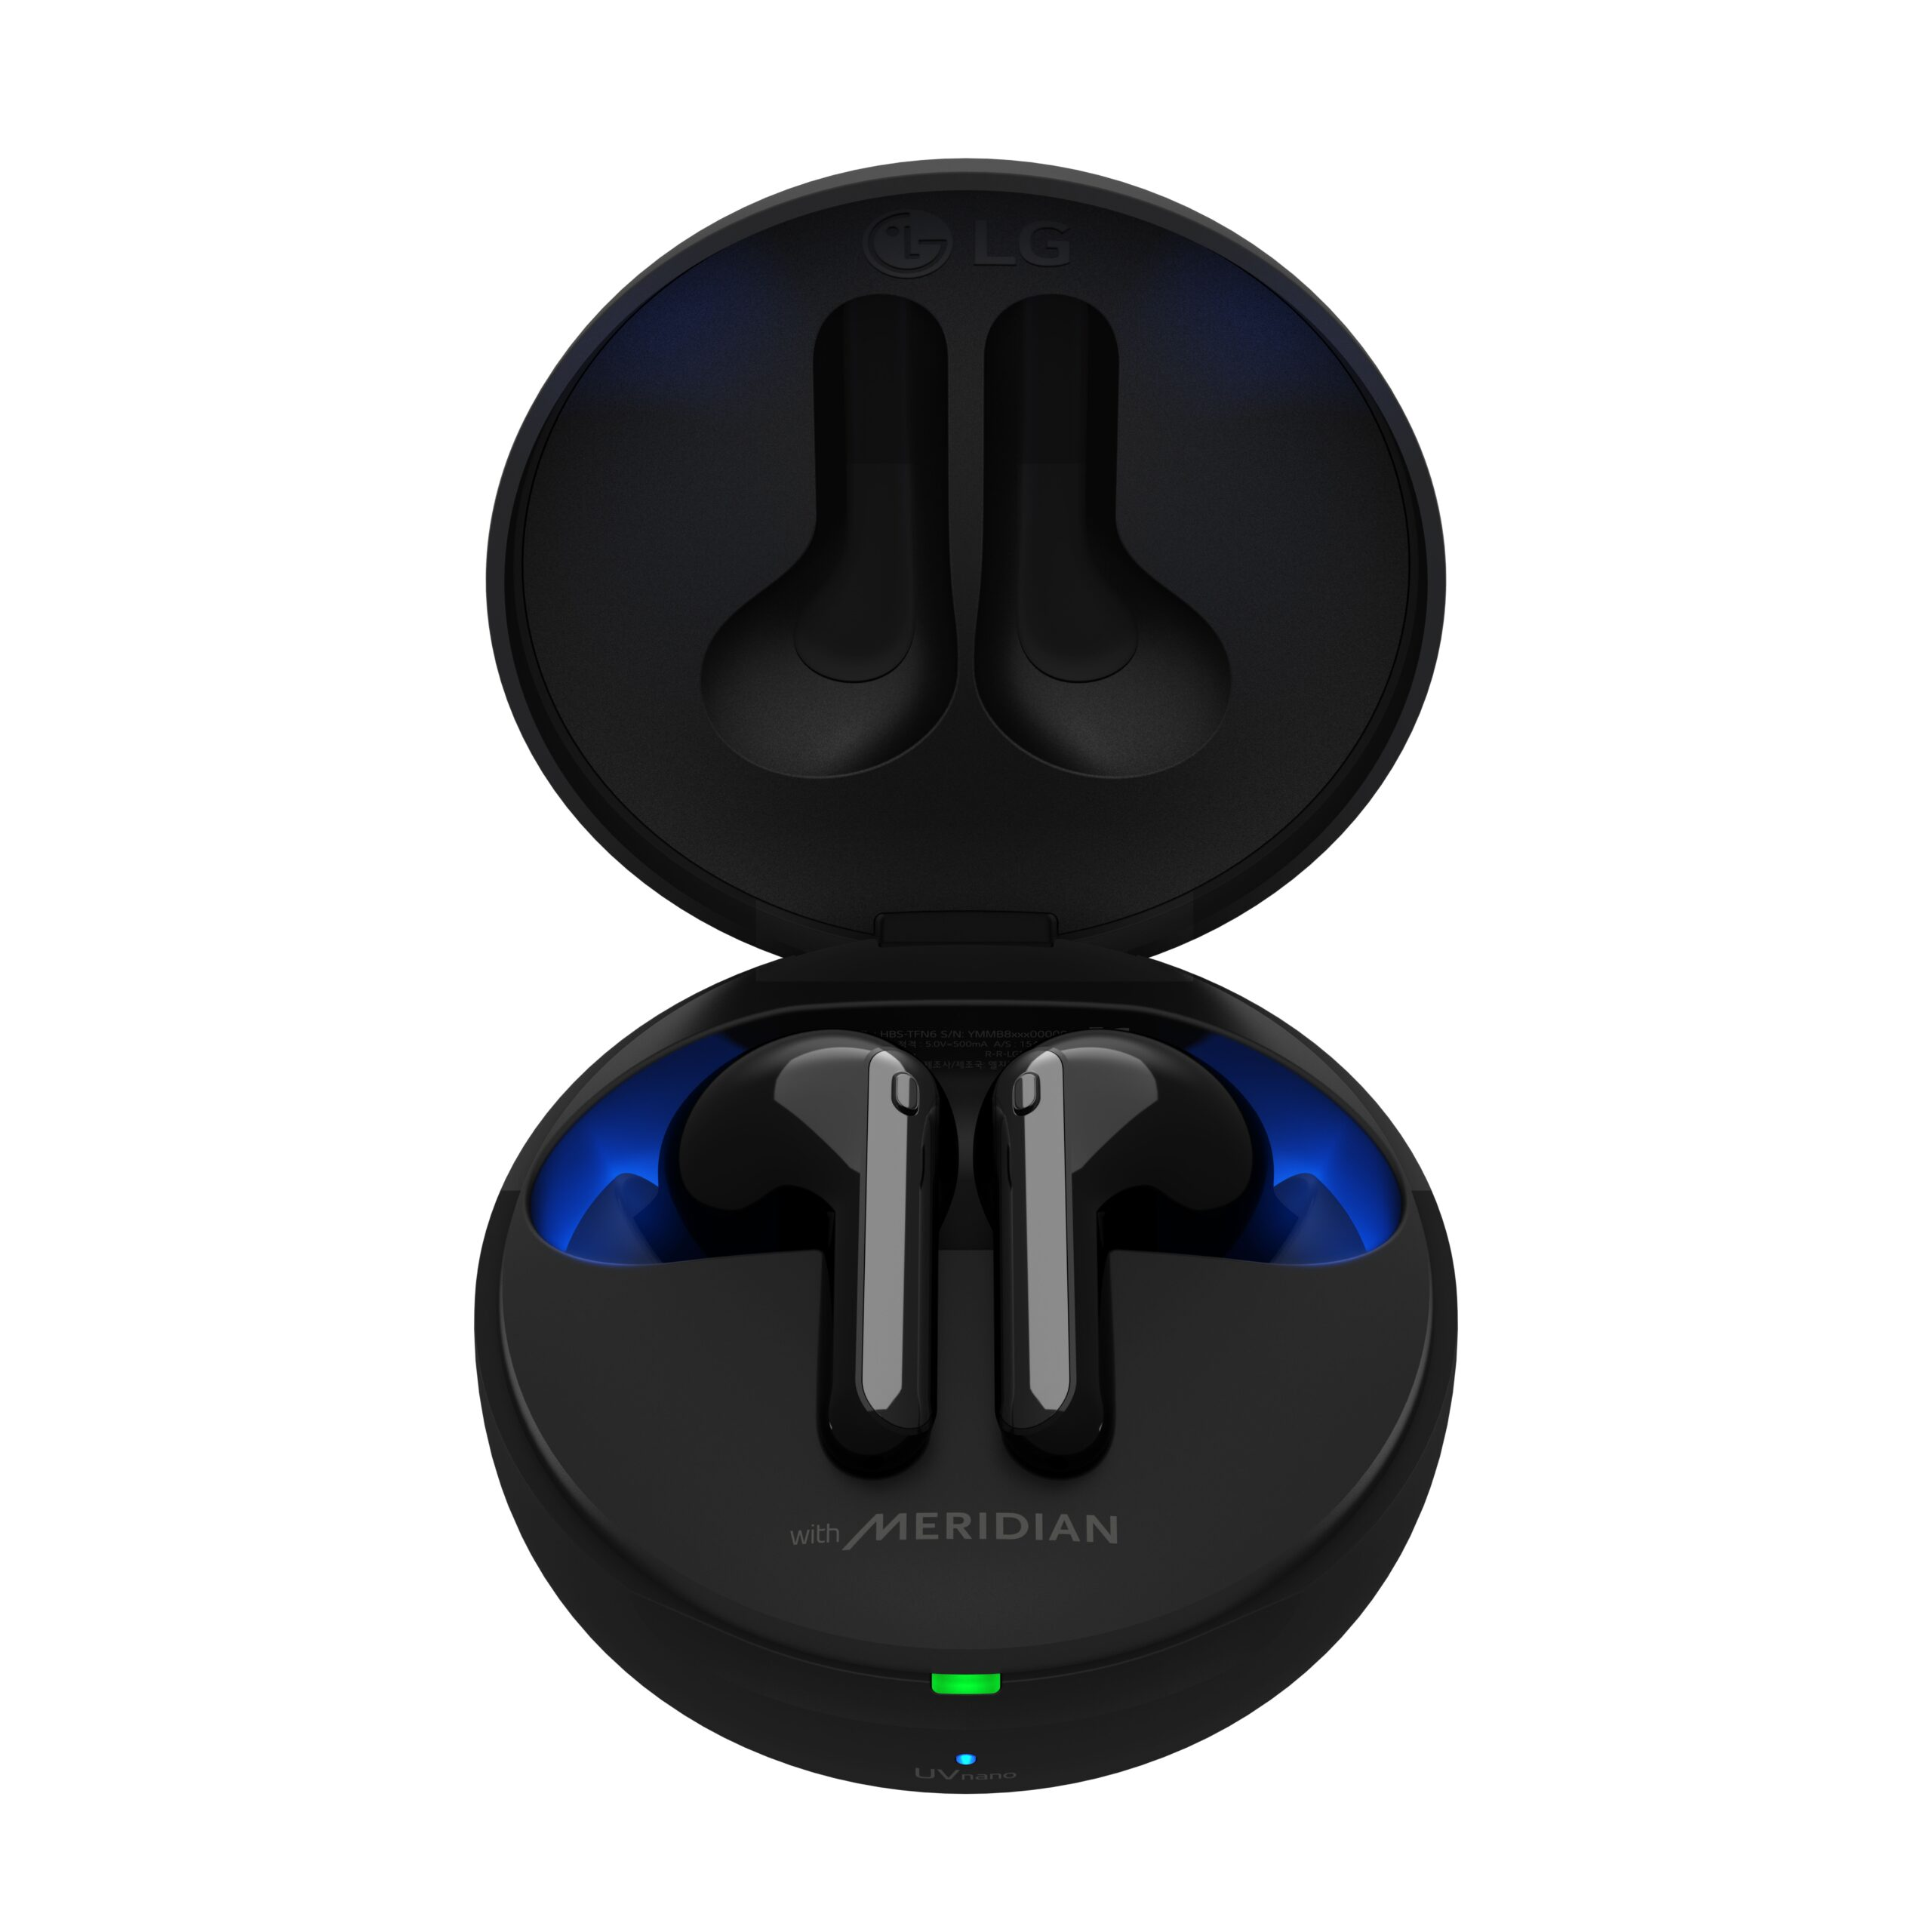 A pair of TONE Free FN7 earbuds in Stylish Black sitting inside its UVnano Charging case, which is emitting a blue light from the top of the case informing charging level and UV nano status